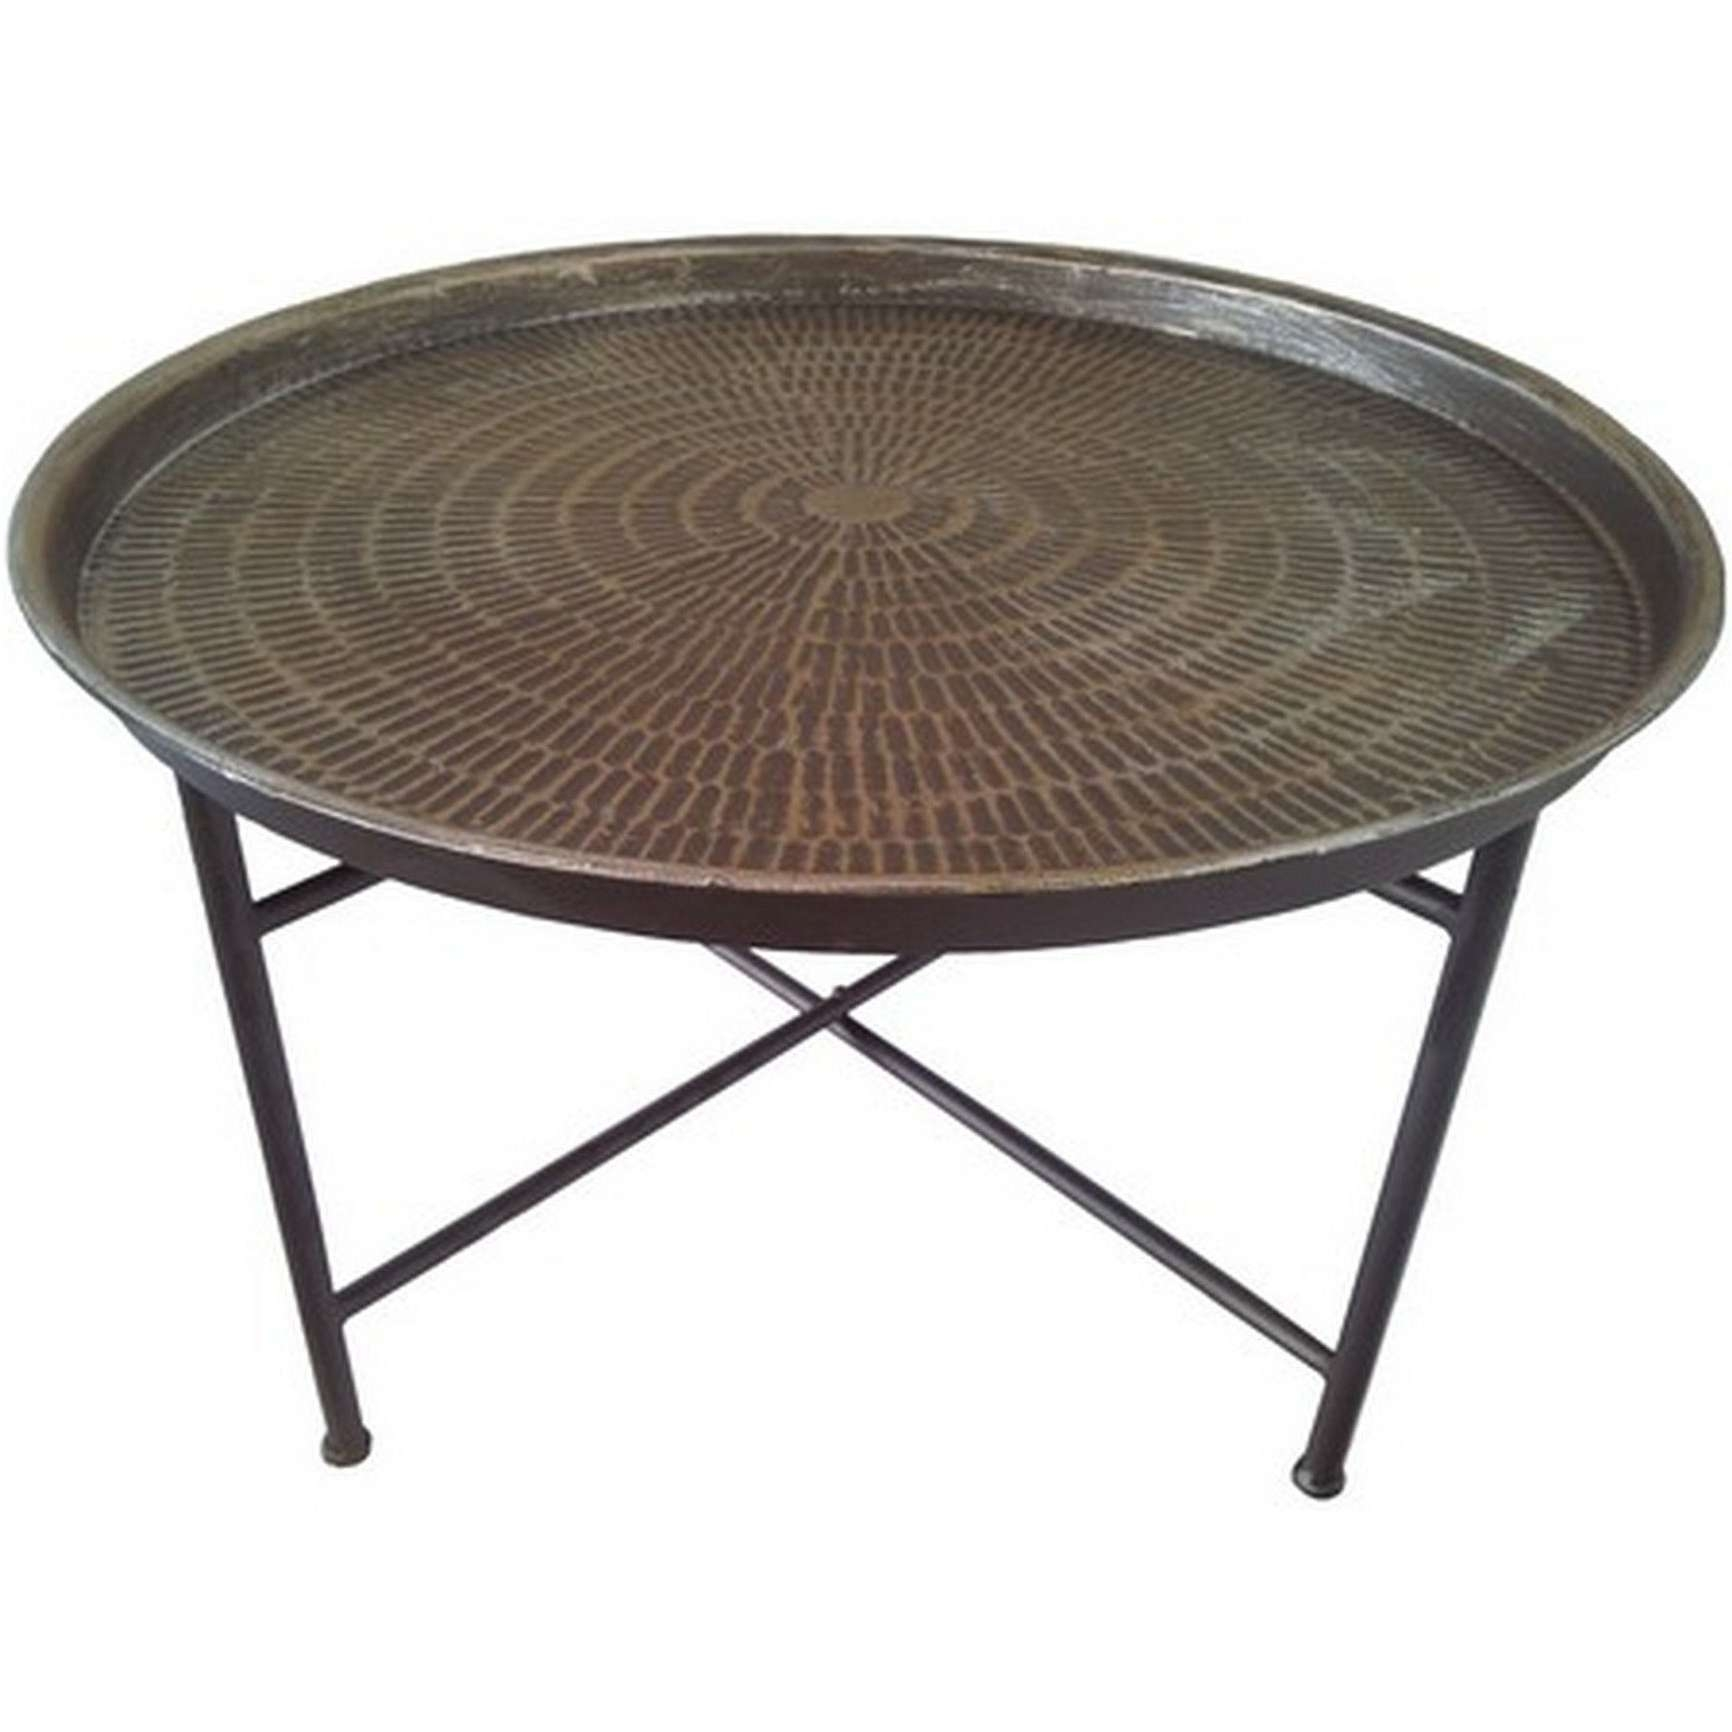 2018 Round Steel Coffee Tables Inside Uncategorized : Metal Round Coffee Table For Finest Coffee Table (View 10 of 20)